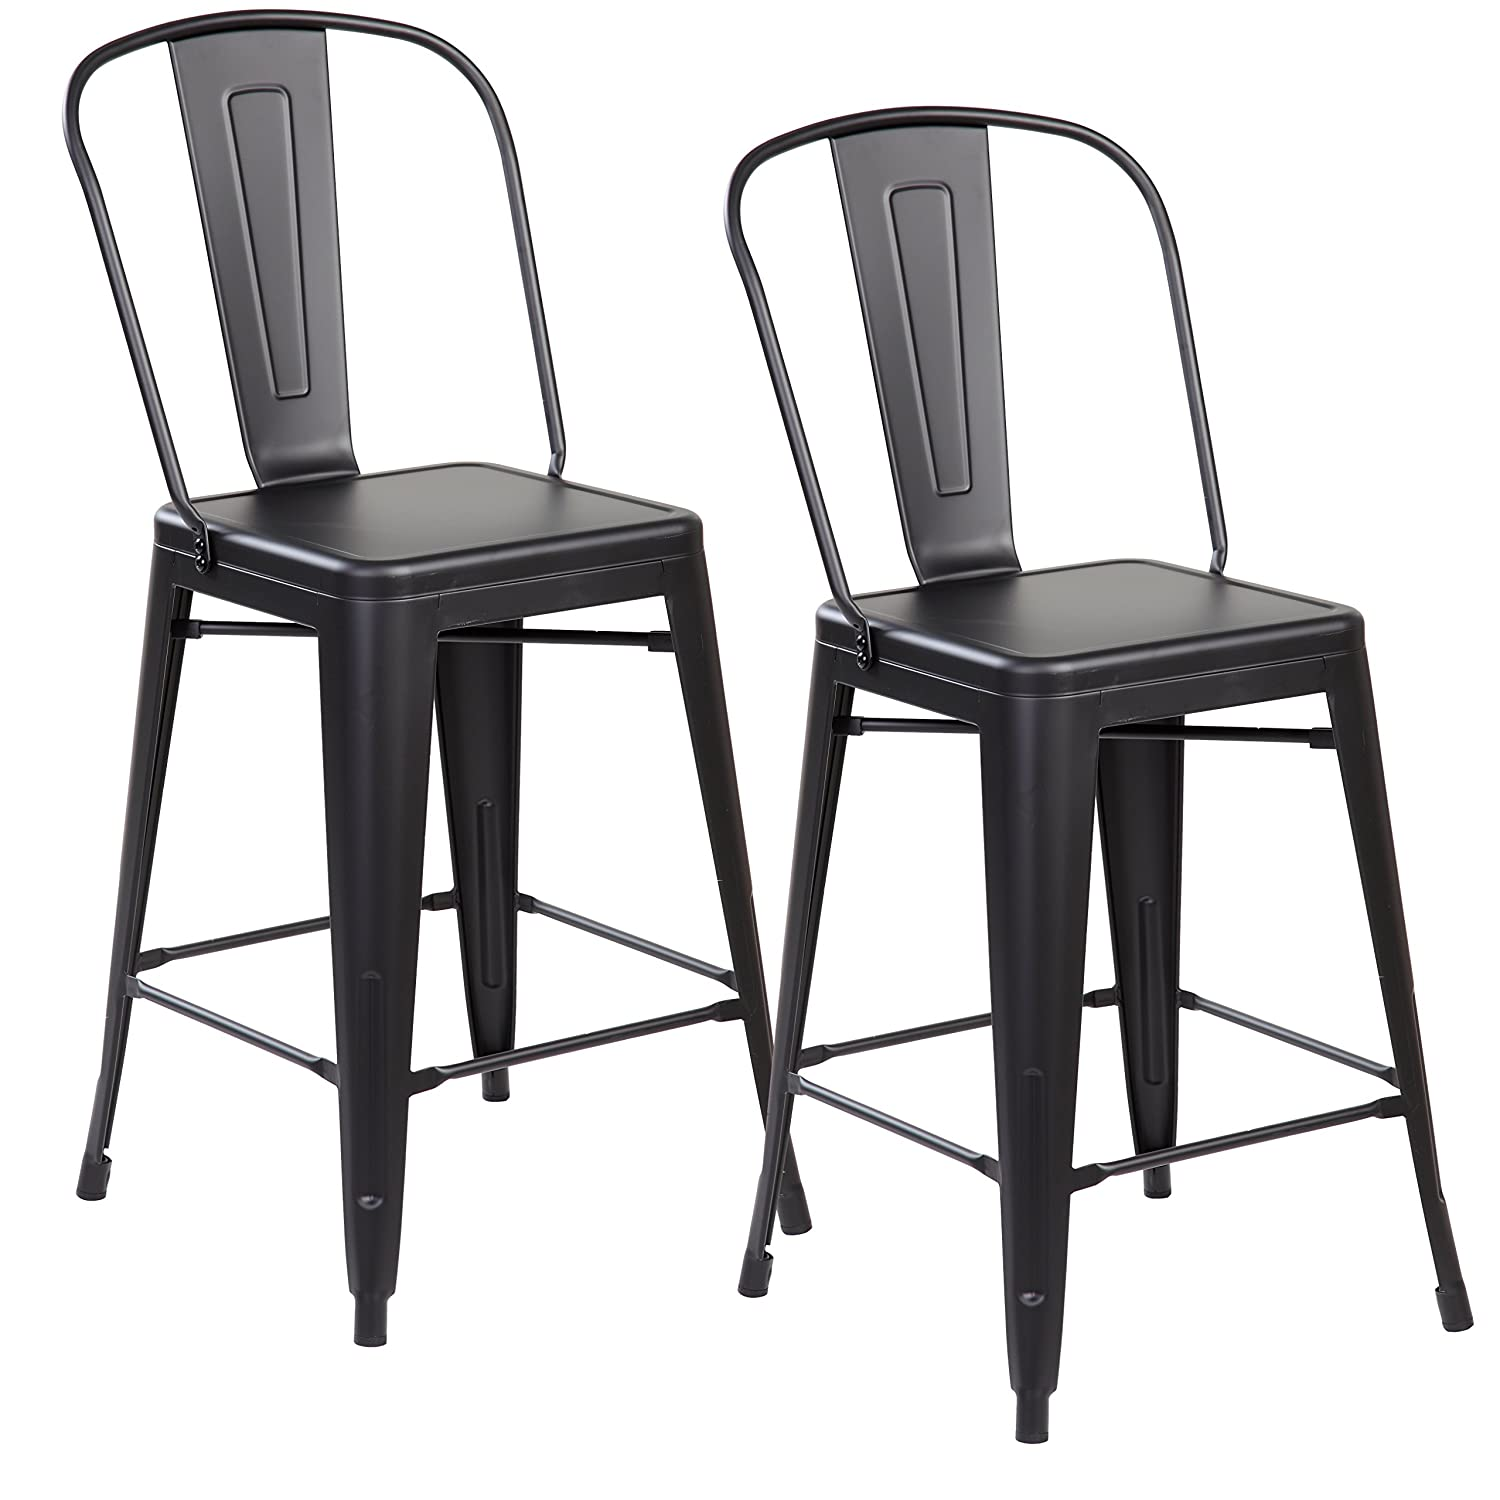 Amazoncom Modern Industrial Metal Counter Height Bar Stools With